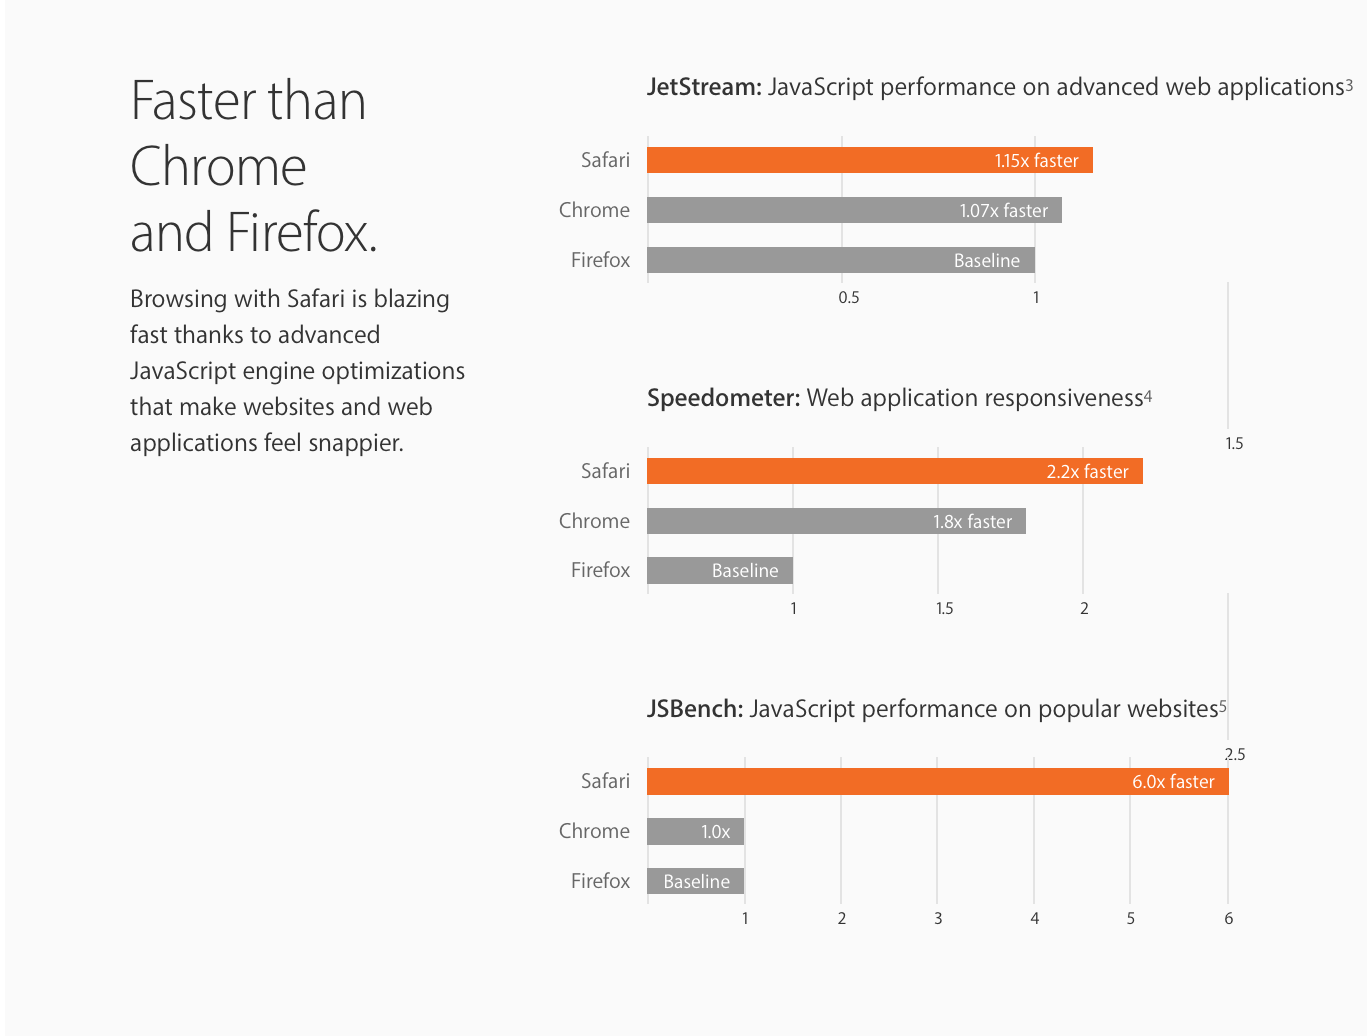 Chart. JetStream. Safari is 1.15x faster than Firefox and 1.07x faster than Chrome. Speedometer, Safari more than twice as fast as Firefox and 1.8x faster than Chrome. JSBench, Safari is 6 times faster than Firefox and Chrome altogether.